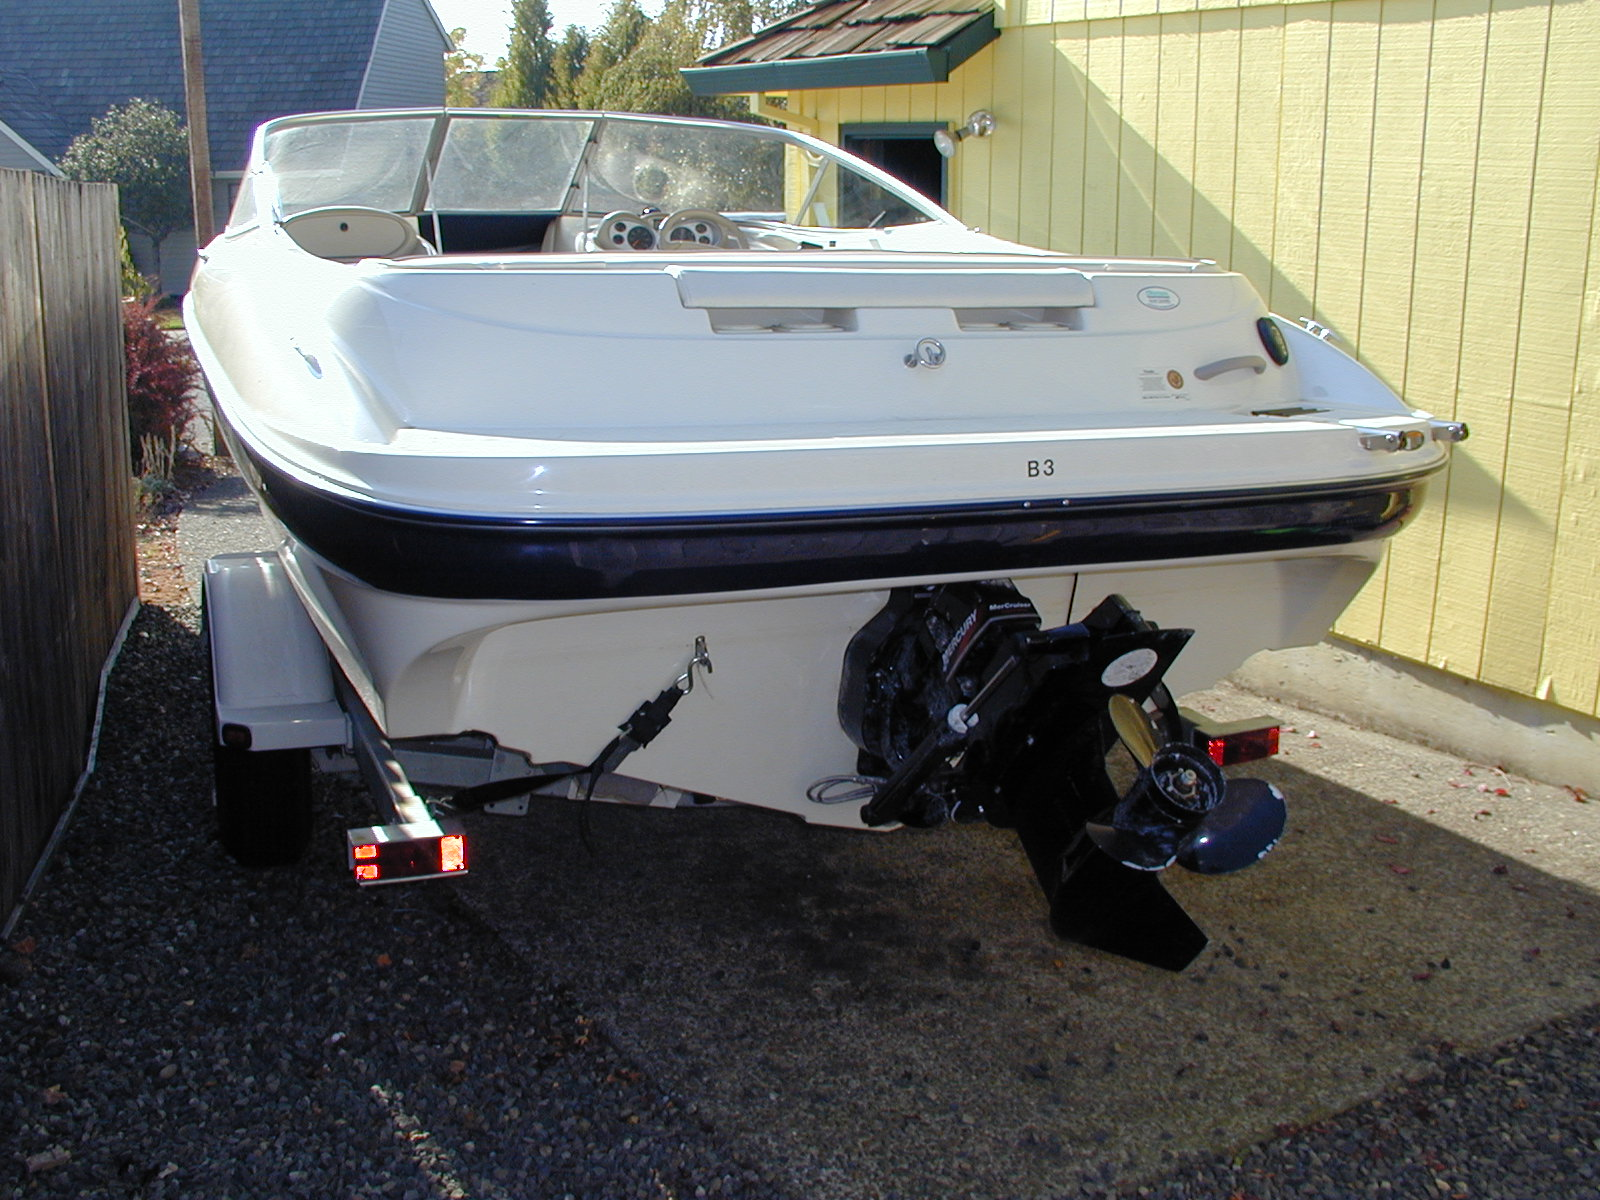 How to Check & Repair Your Boat's Transom - Boat Life